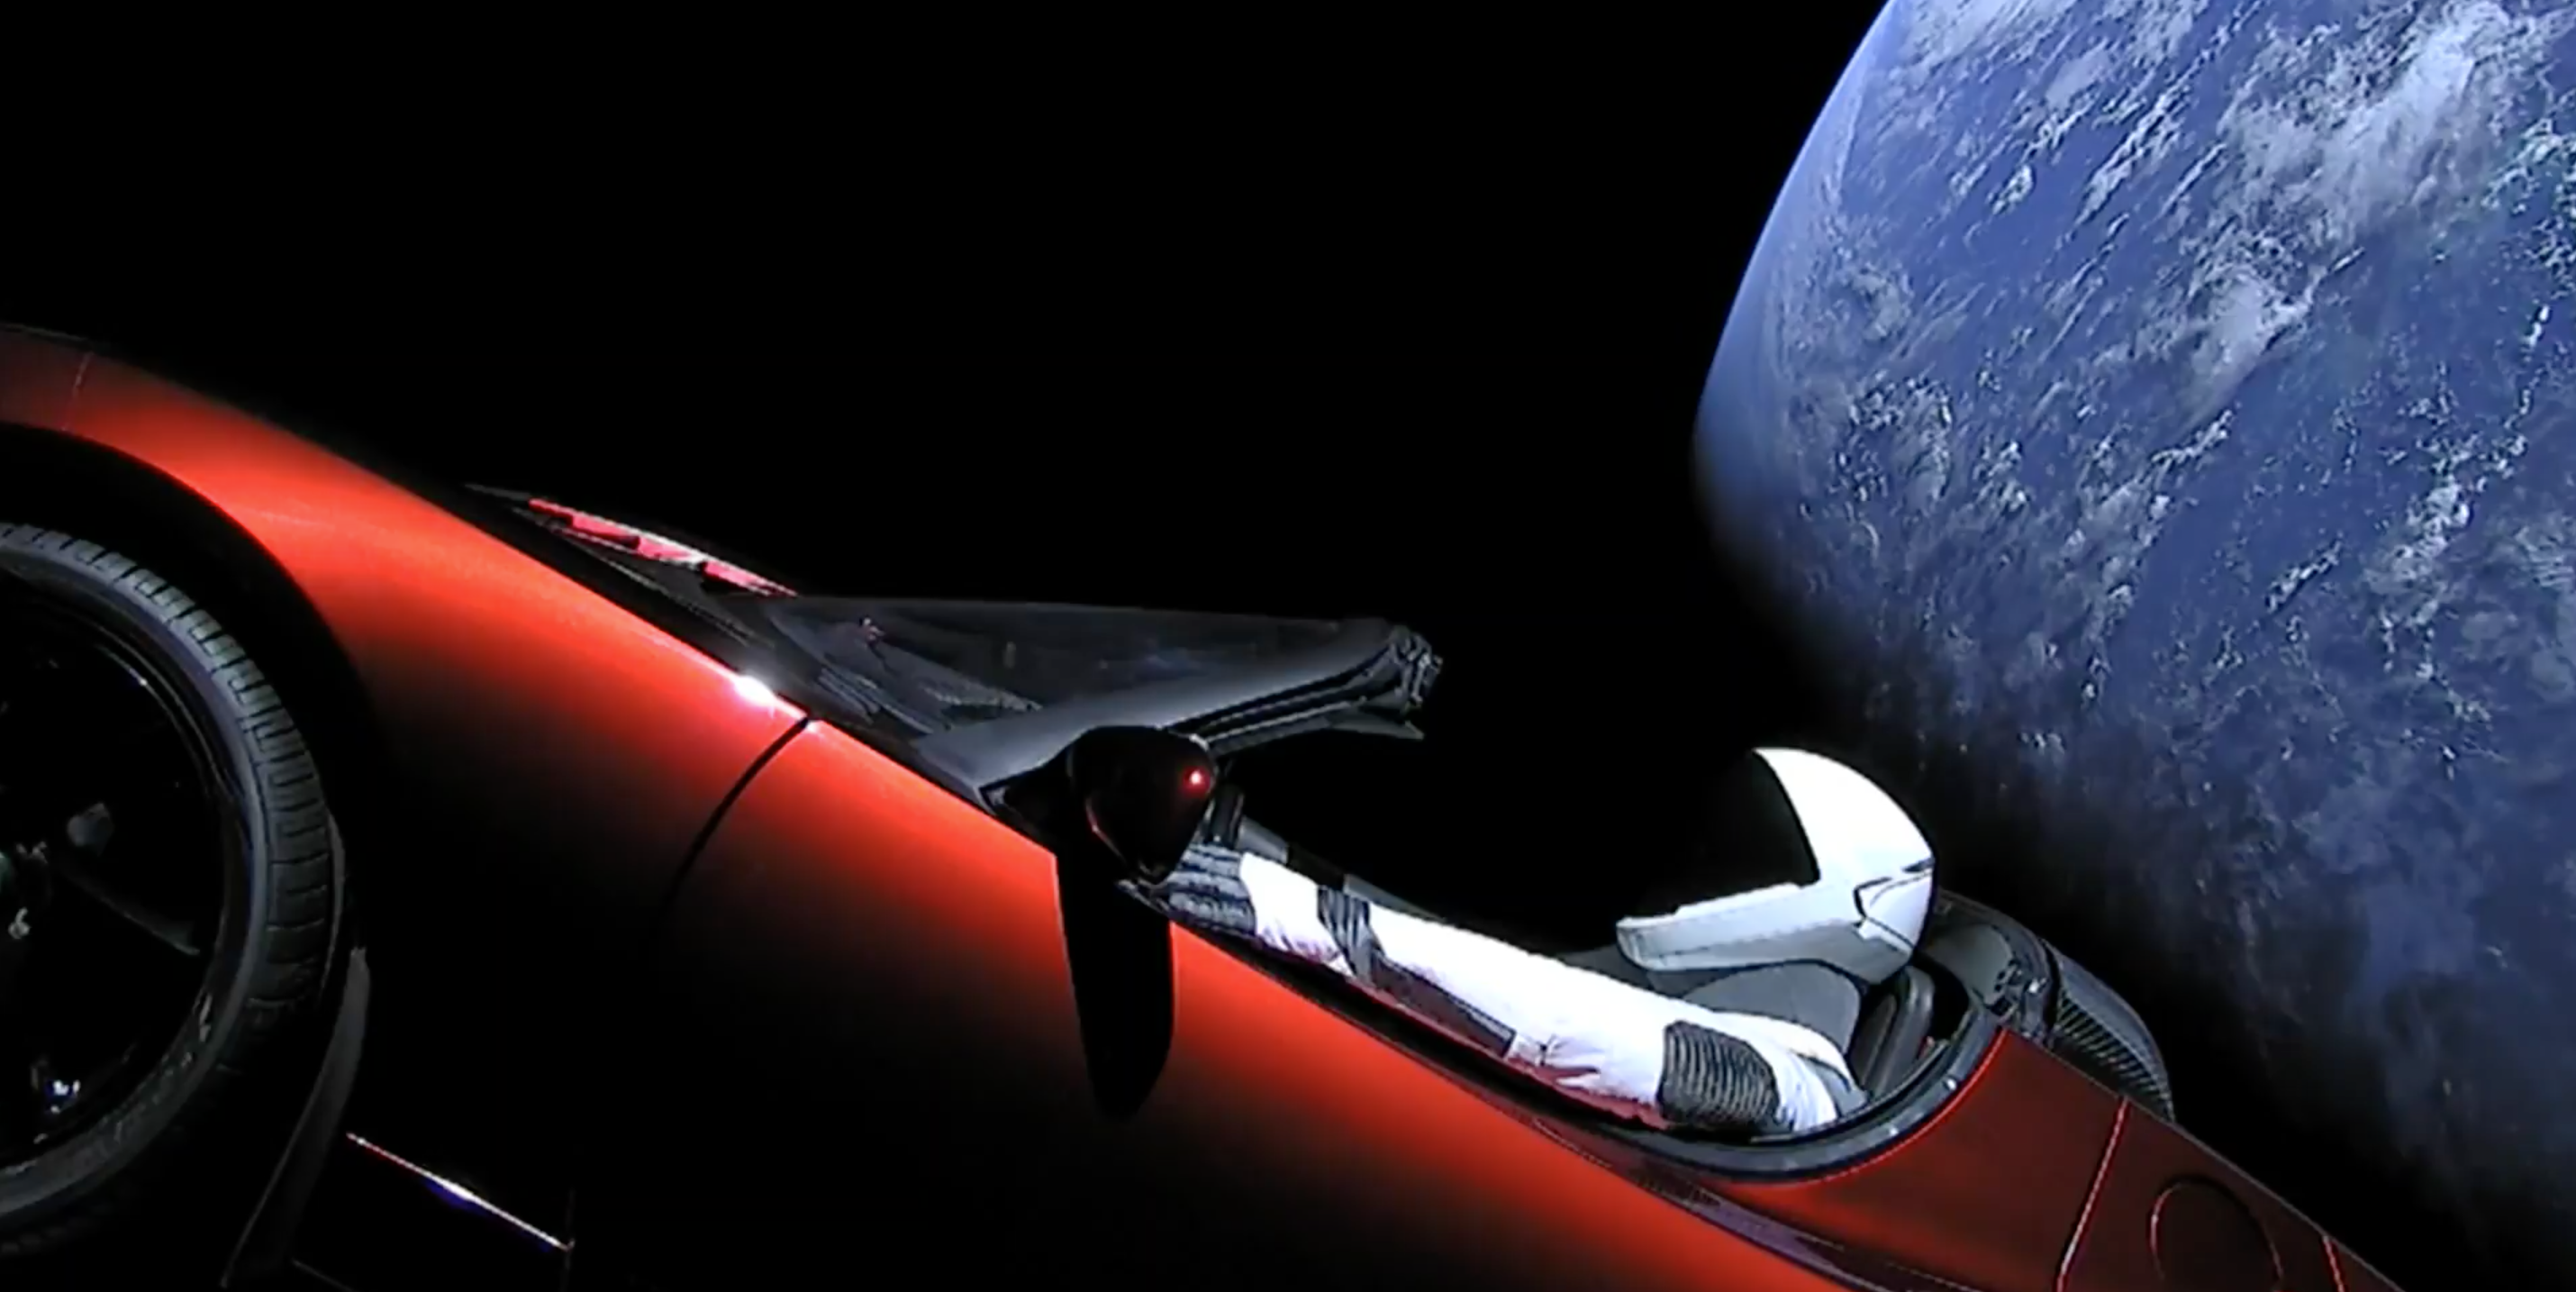 Watch a Video of Elon Musk's Roadster Flying Through Space